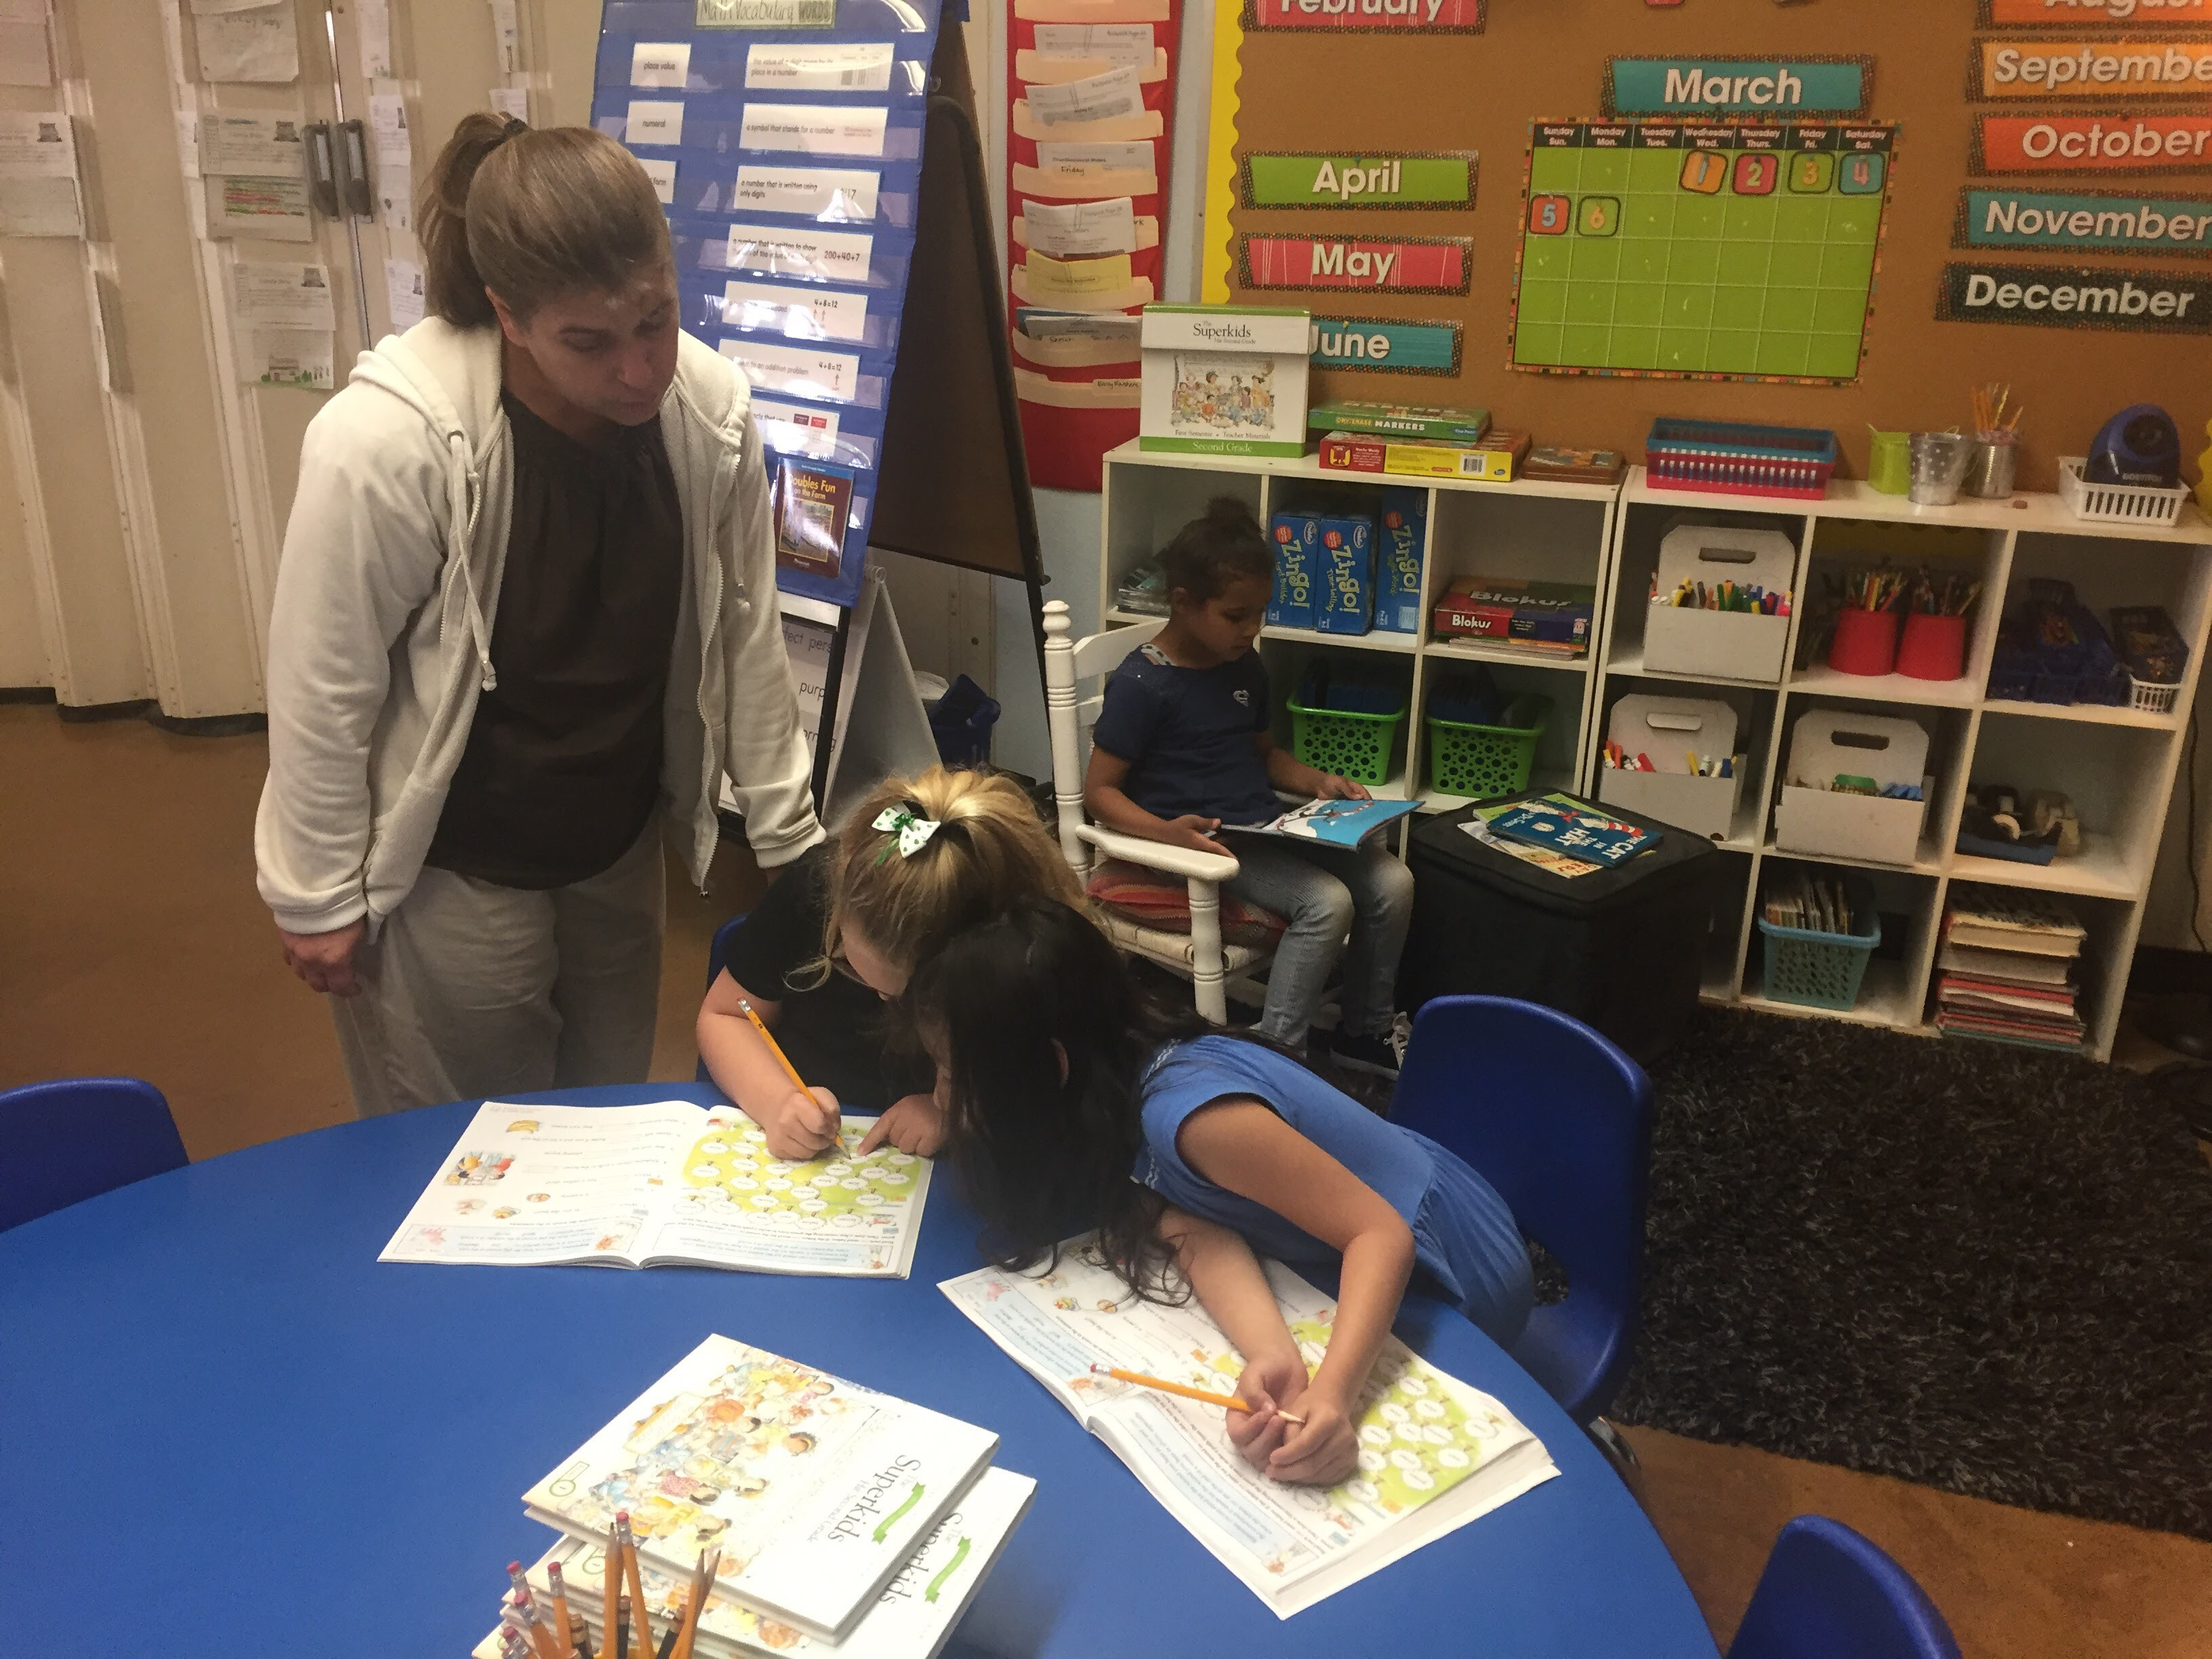 Central phoenix charter school creates a blueprint for academic the schools emphasis on relationships permeates every aspect of the school from its discipline policies to the staffs interaction with parents malvernweather Choice Image